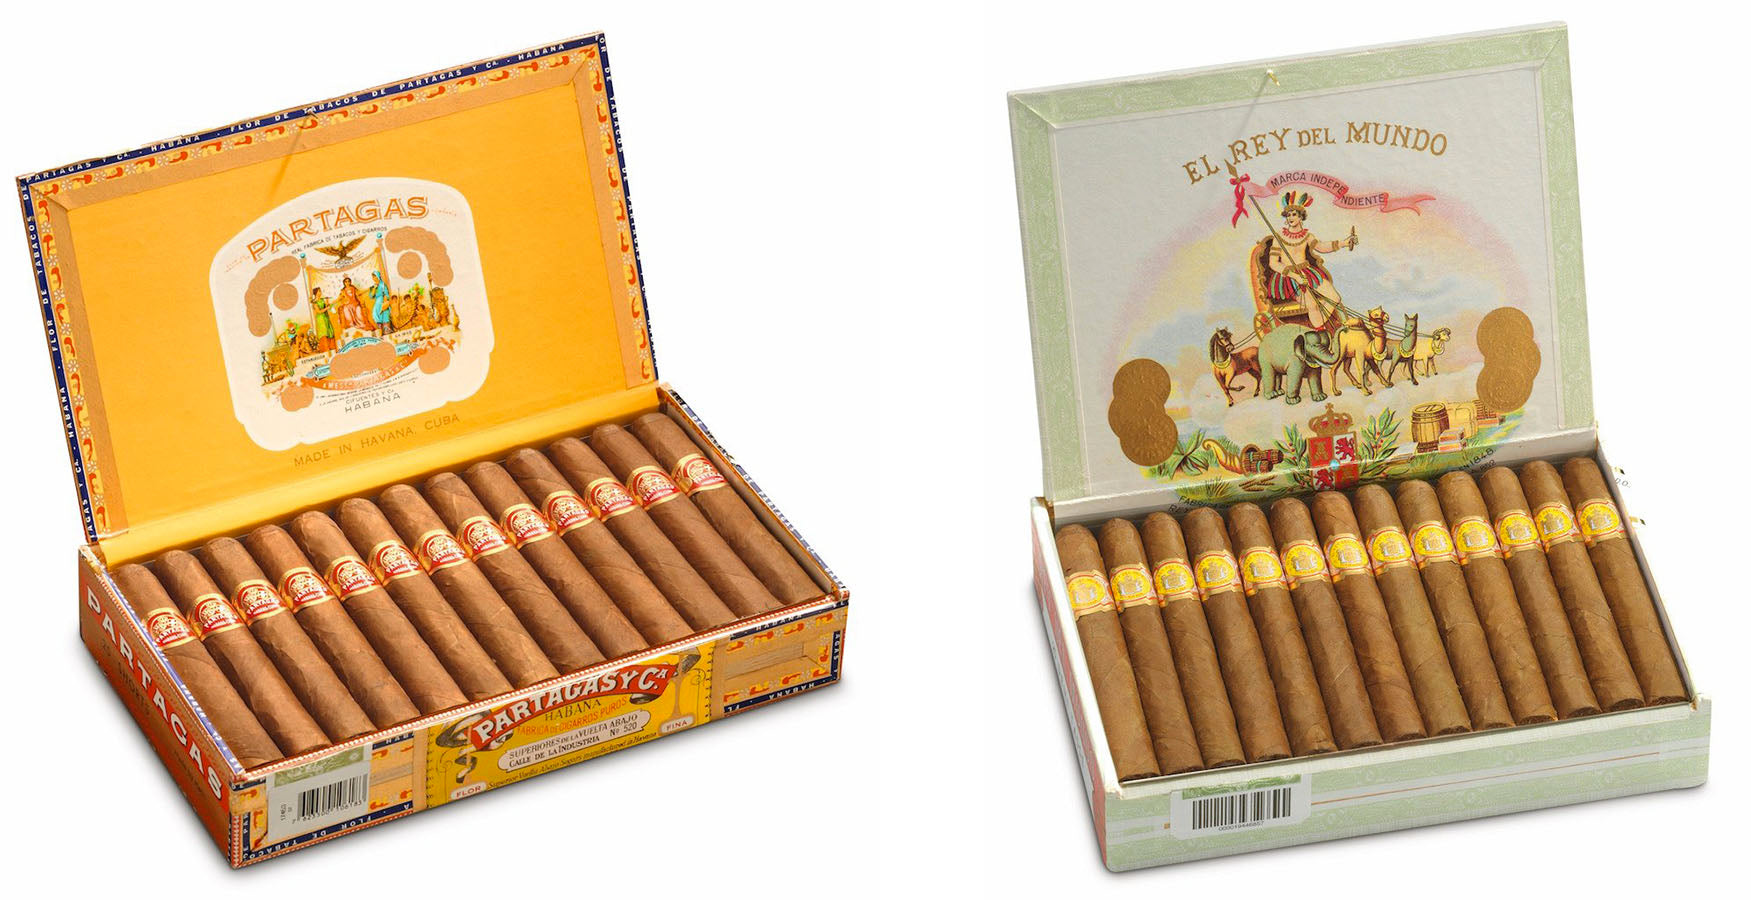 partagas shorts cigars and el rey del mundo demi tasse cuban cigars online egm cigars